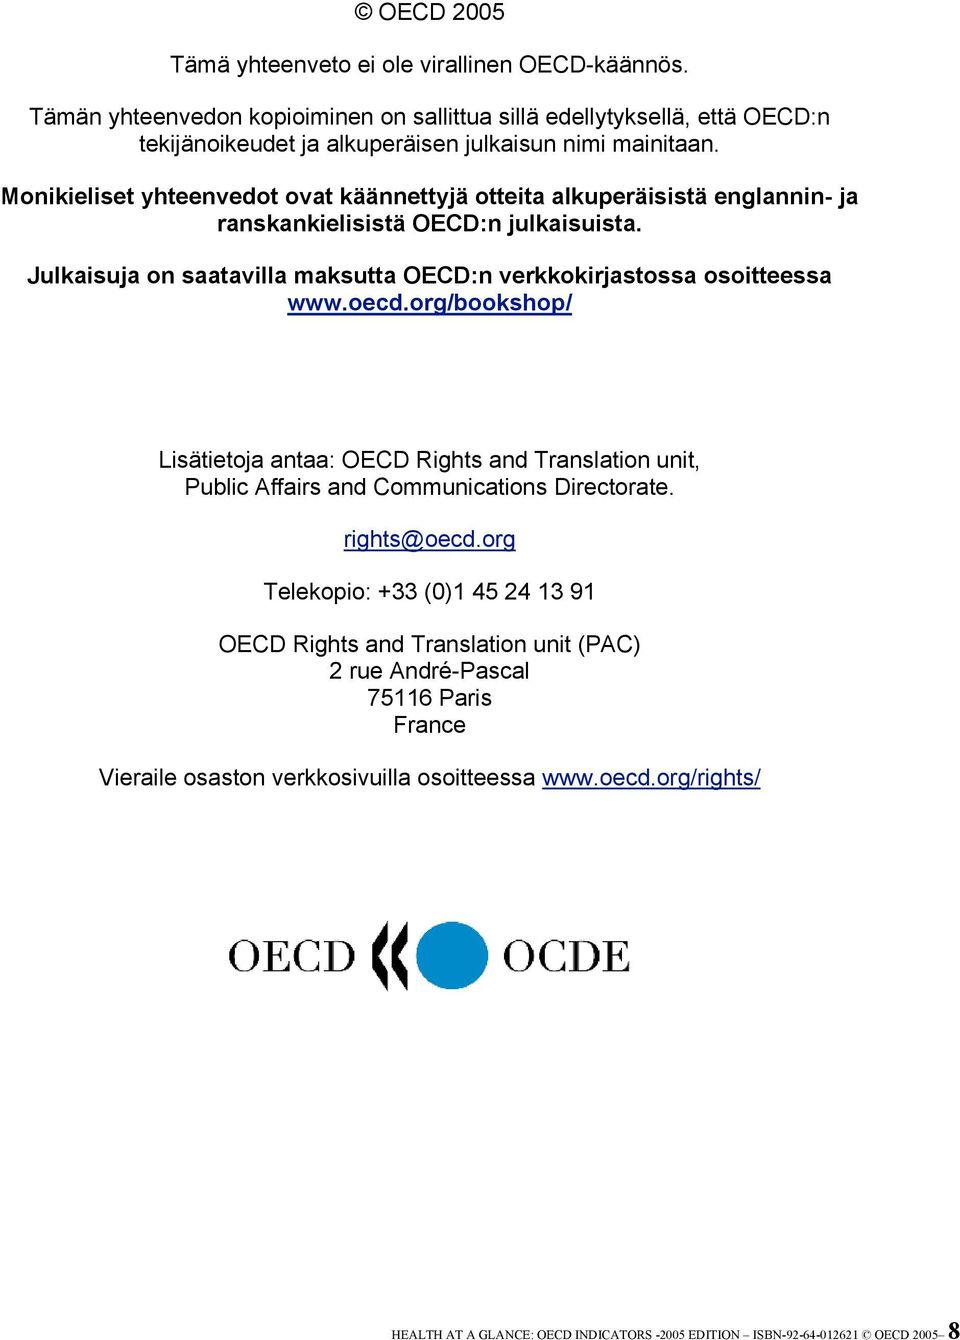 oecd.org/bookshop/ Lisätietoja antaa: OECD Rights and Translation unit, Public Affairs and Communications Directorate. rights@oecd.